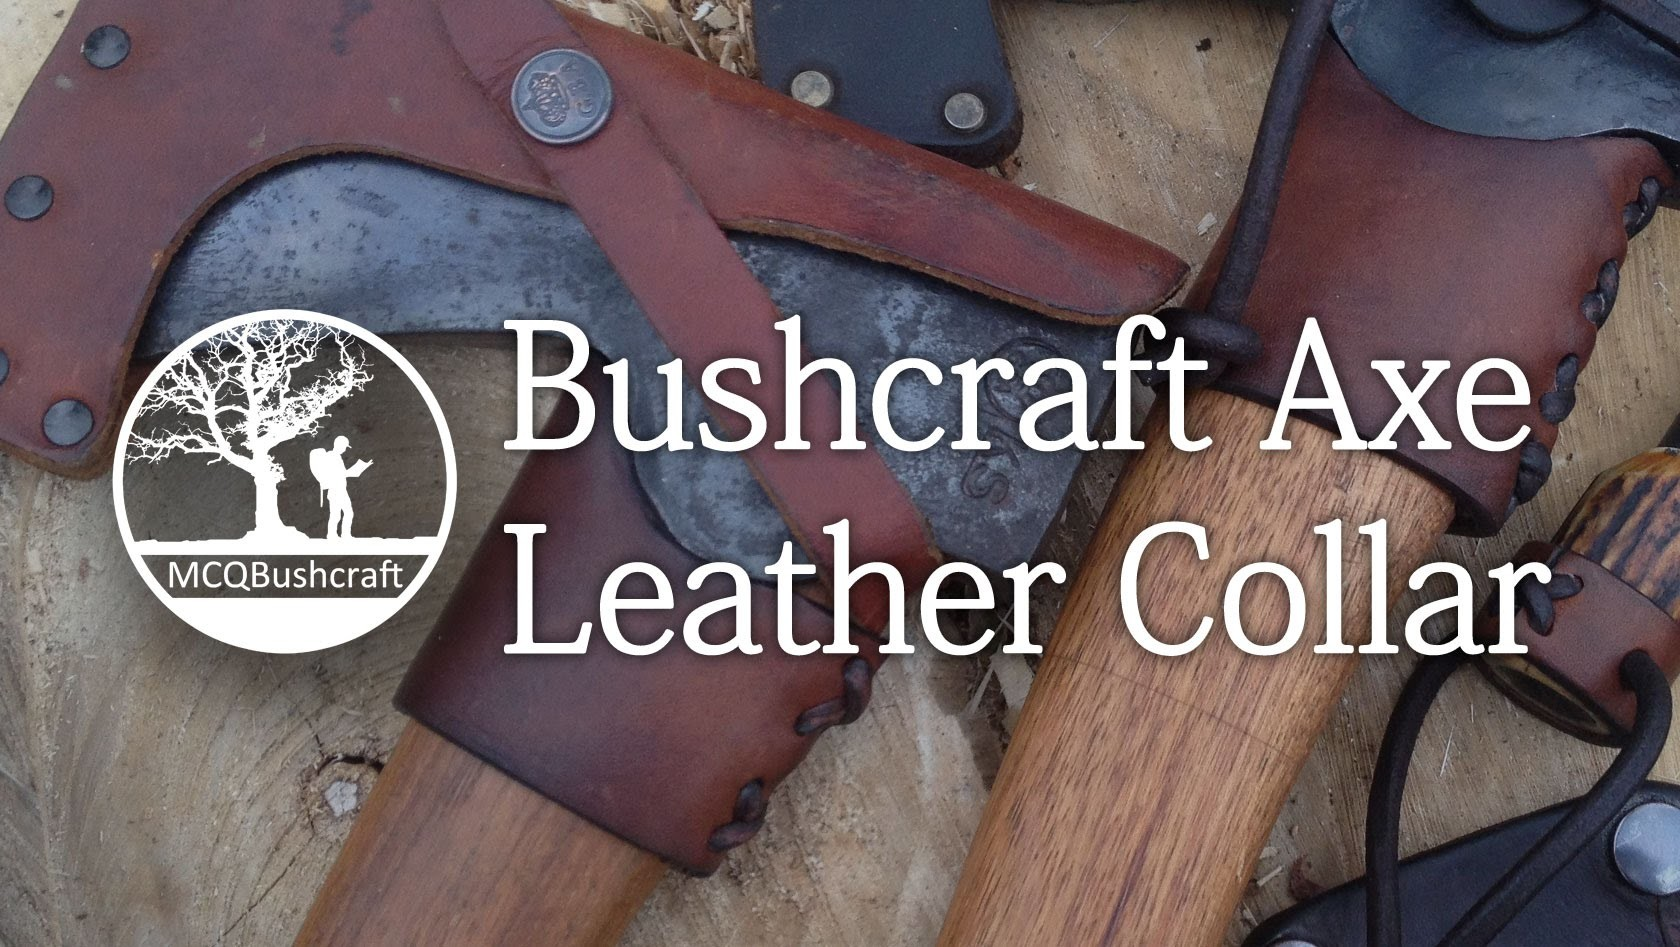 Bushcraft Axe Work: Leather Collar